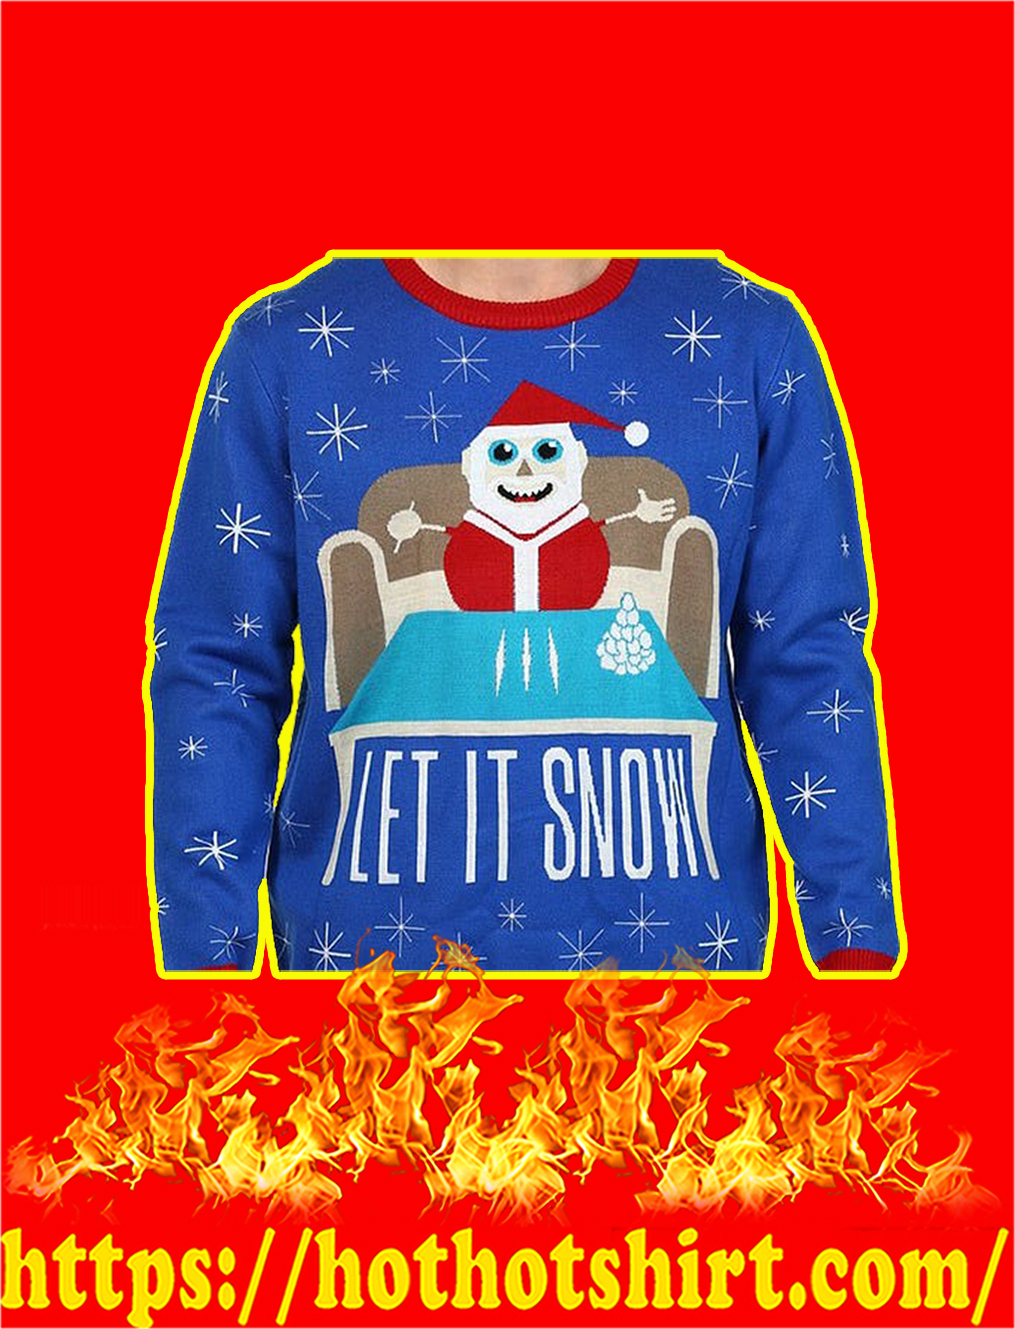 Let It Snow Santa Claus Doing Cocaine Sweater- M